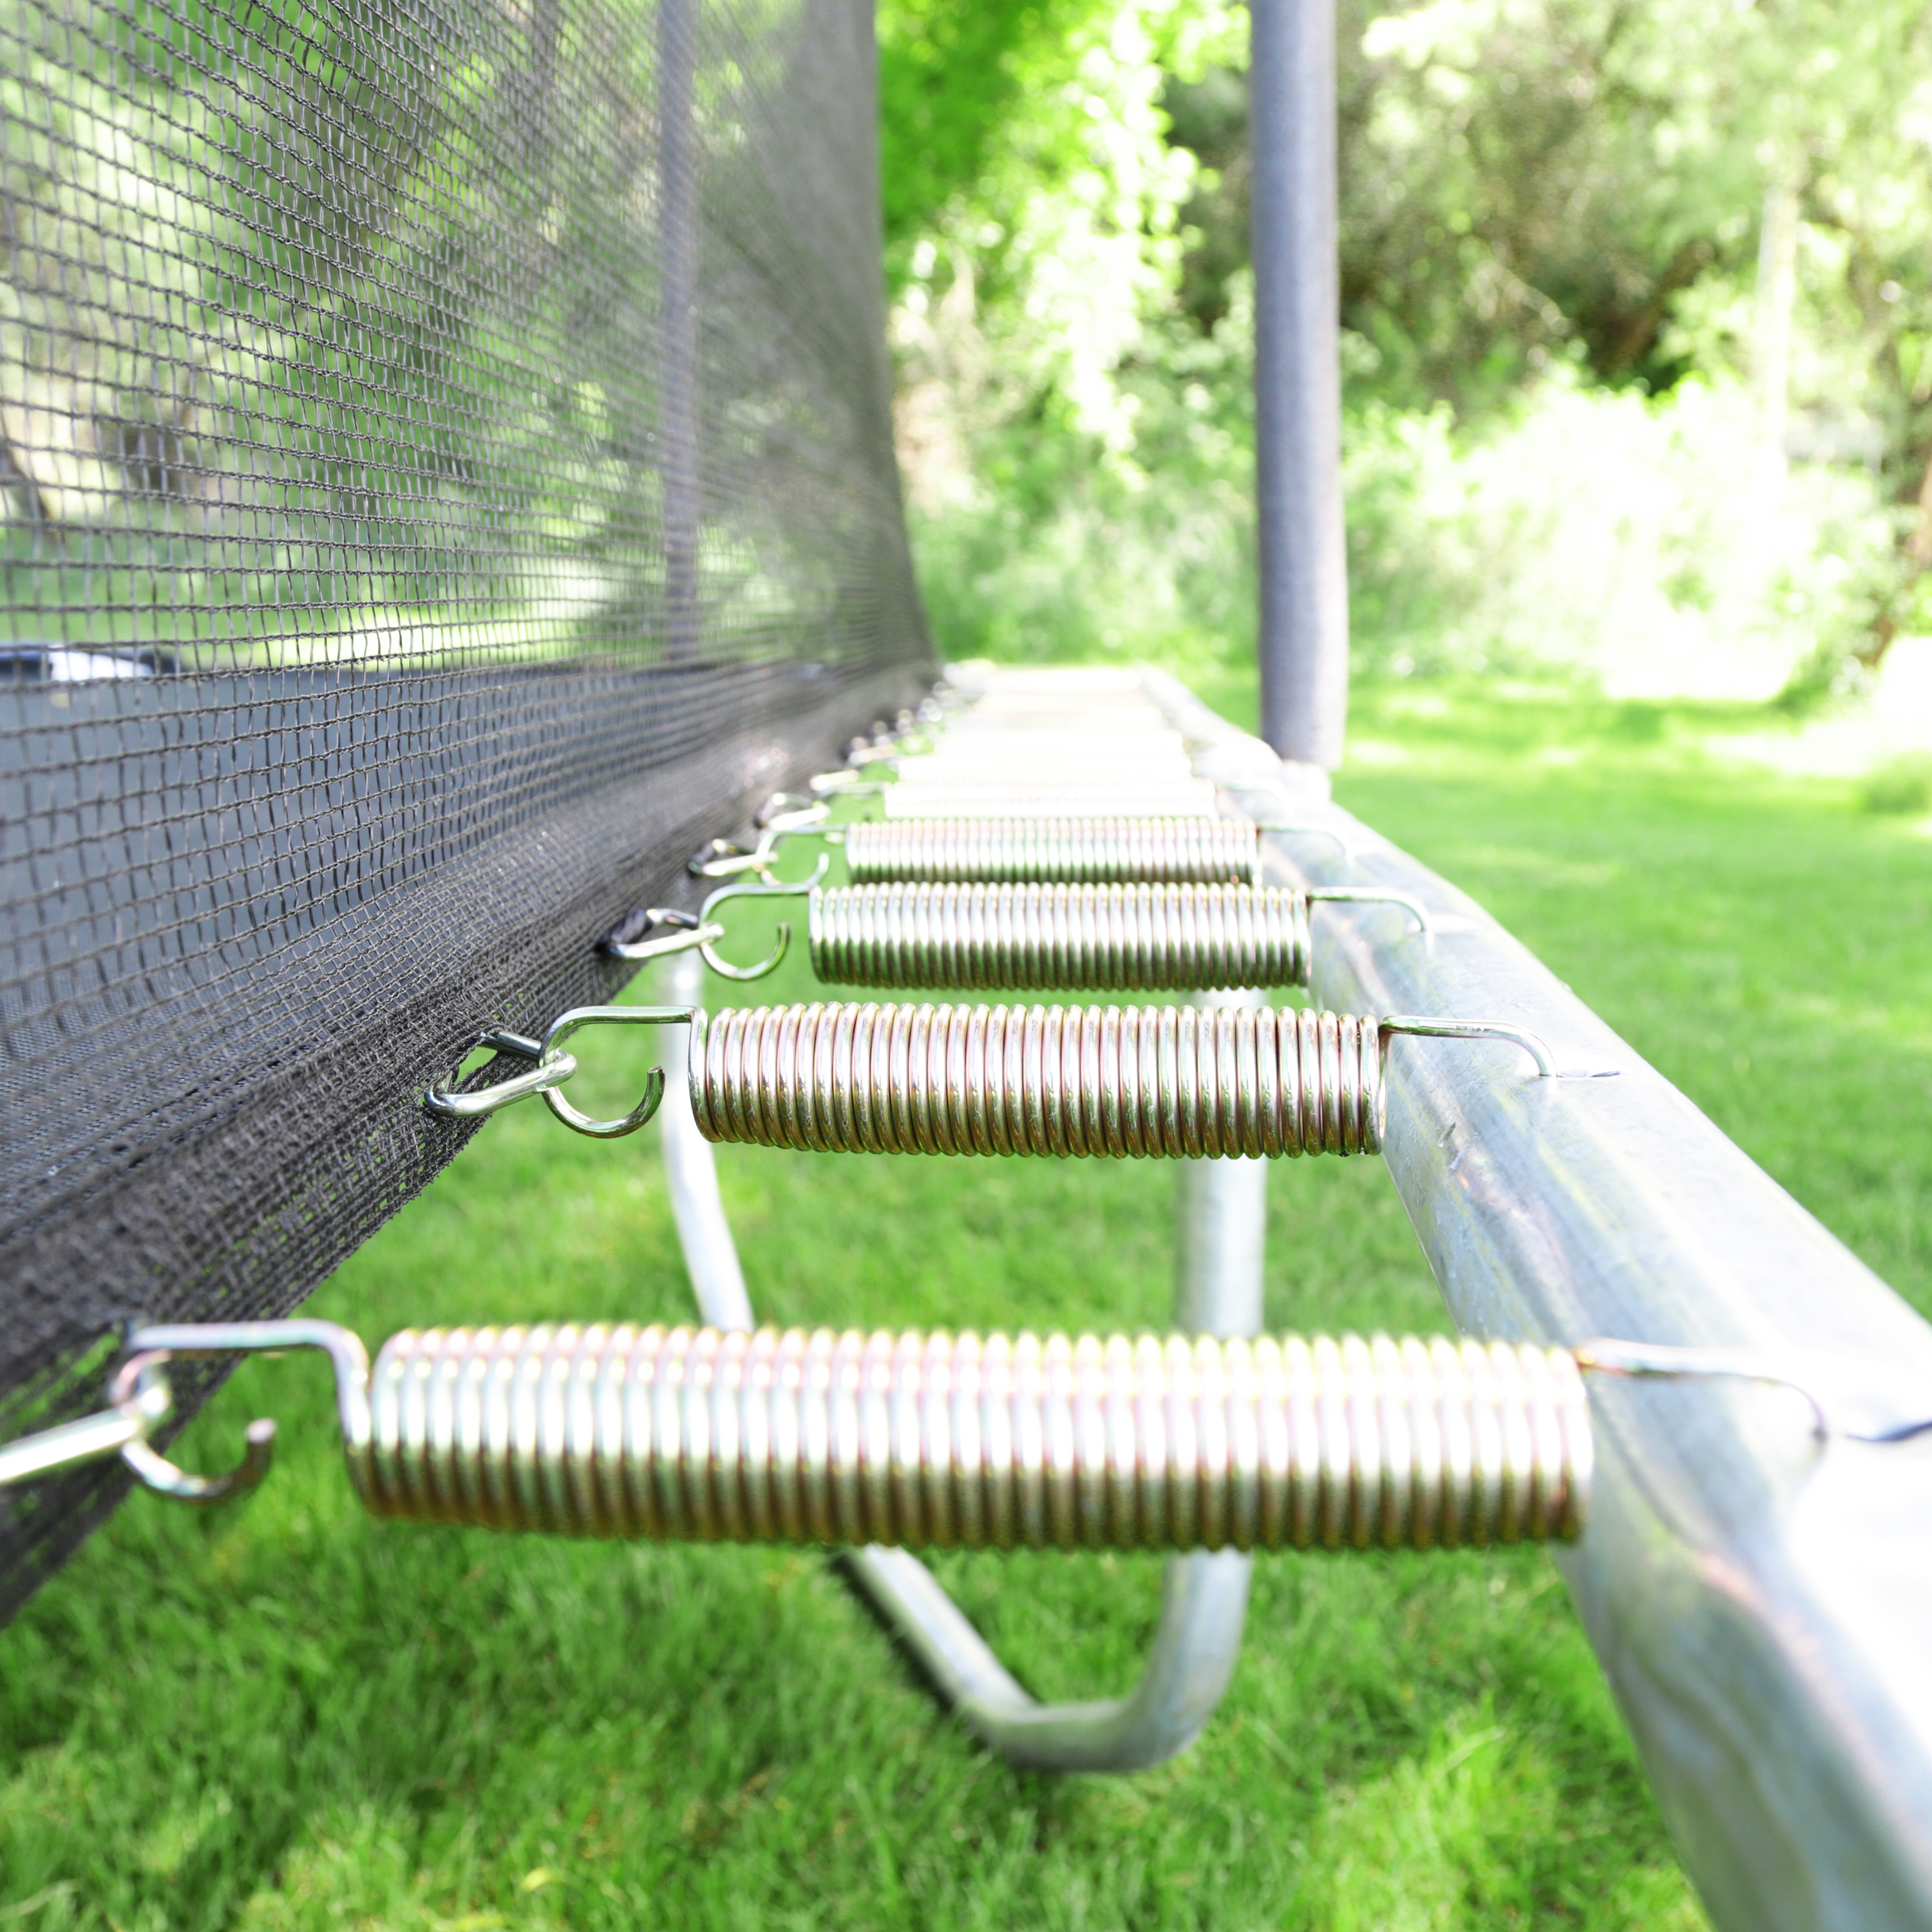 Professional Trampoline Assembly Services - Handy Outdoor ...